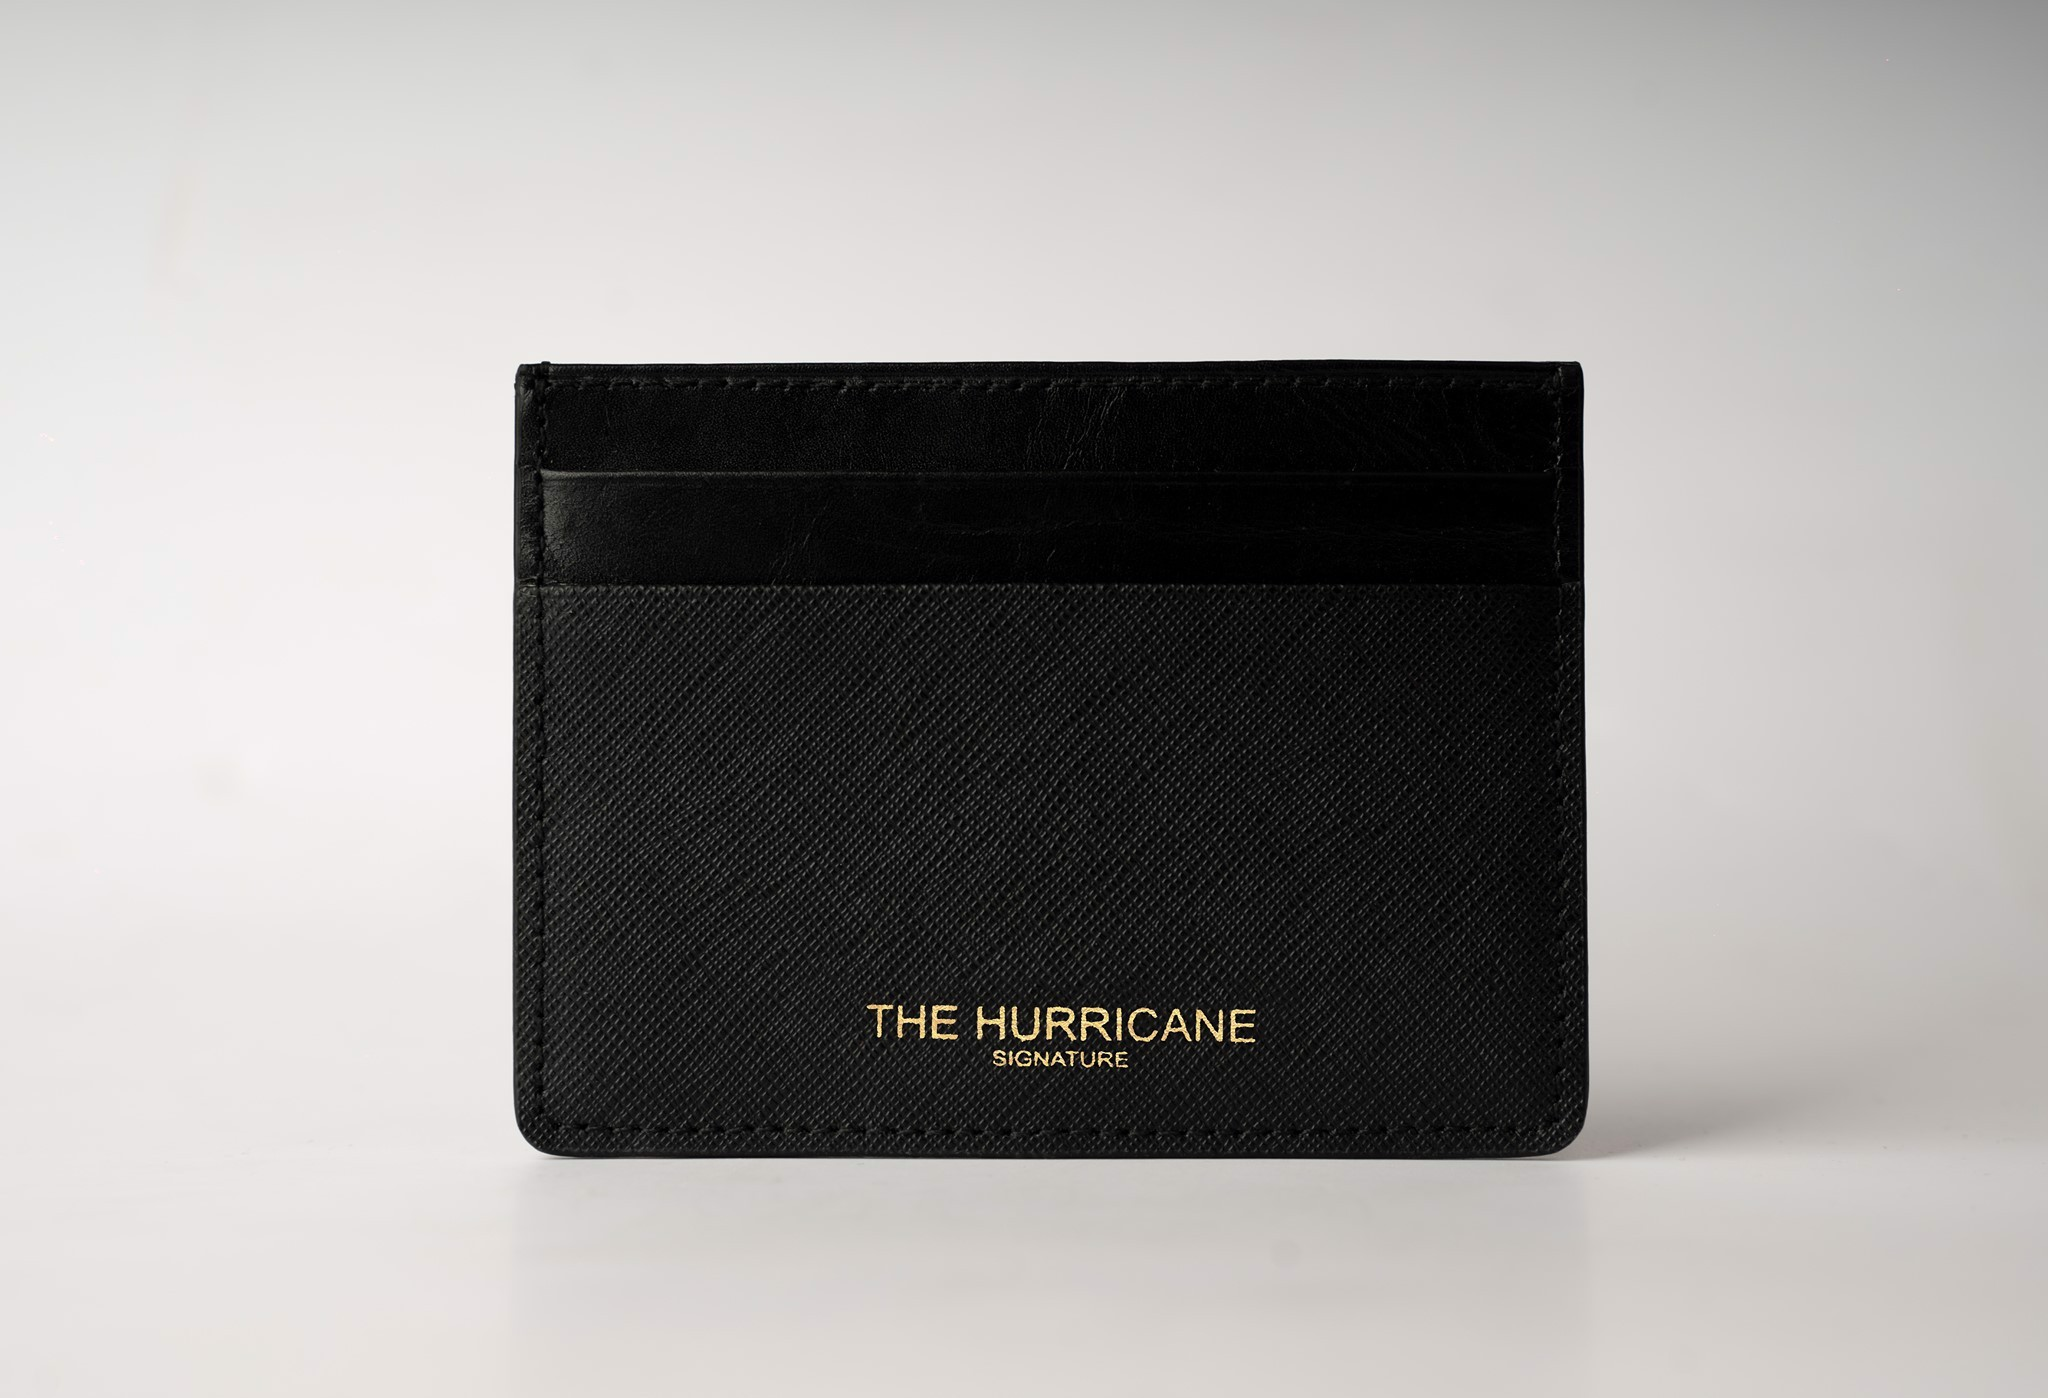 THE HURRICANE HOLDER CARD